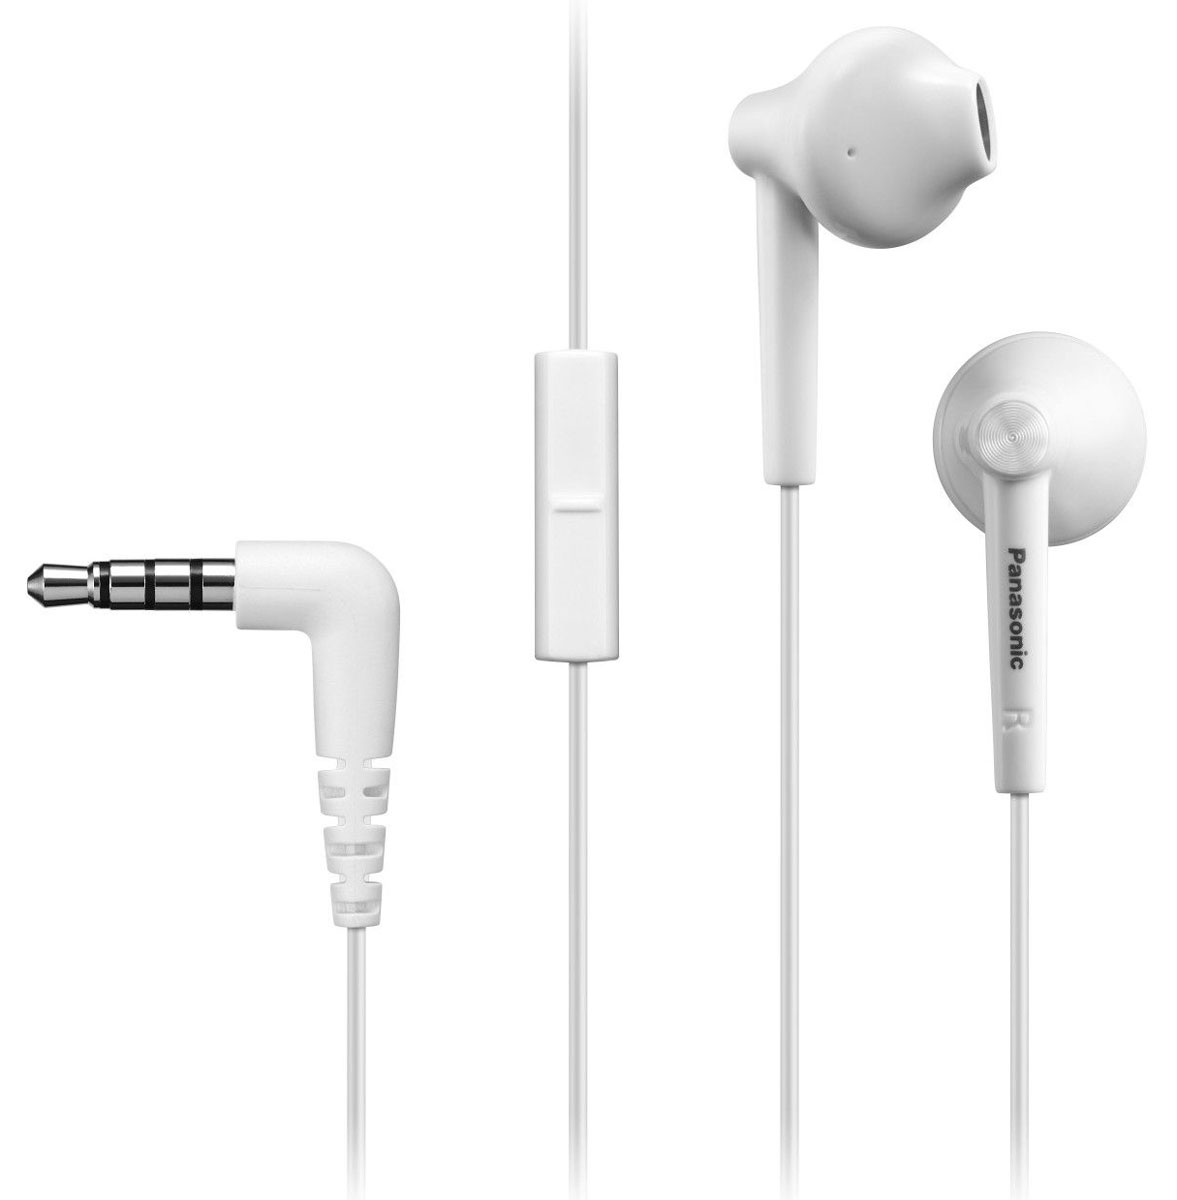 Panasonic RP-TCM50E-W, White наушники panasonic rp tcm50e k in ear headphones microphone and remote control compatible with smartphone clear bass sound custom design